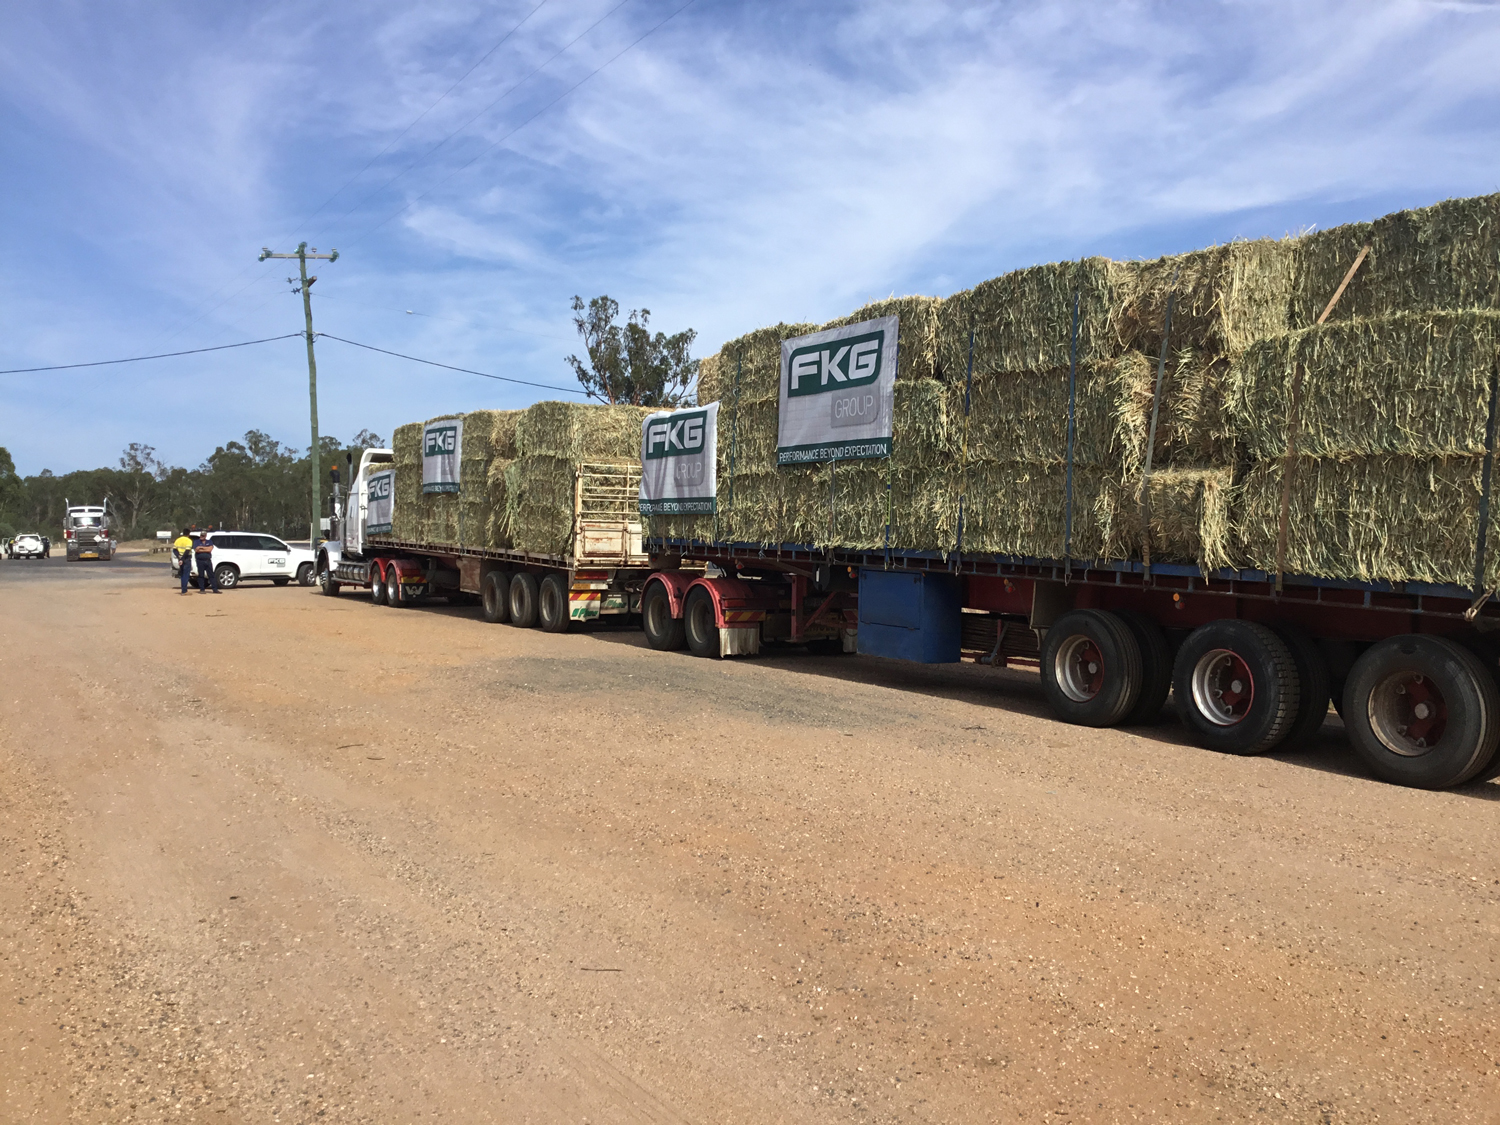 FKG Group Donates Hay to Farmers in the Isaac Region